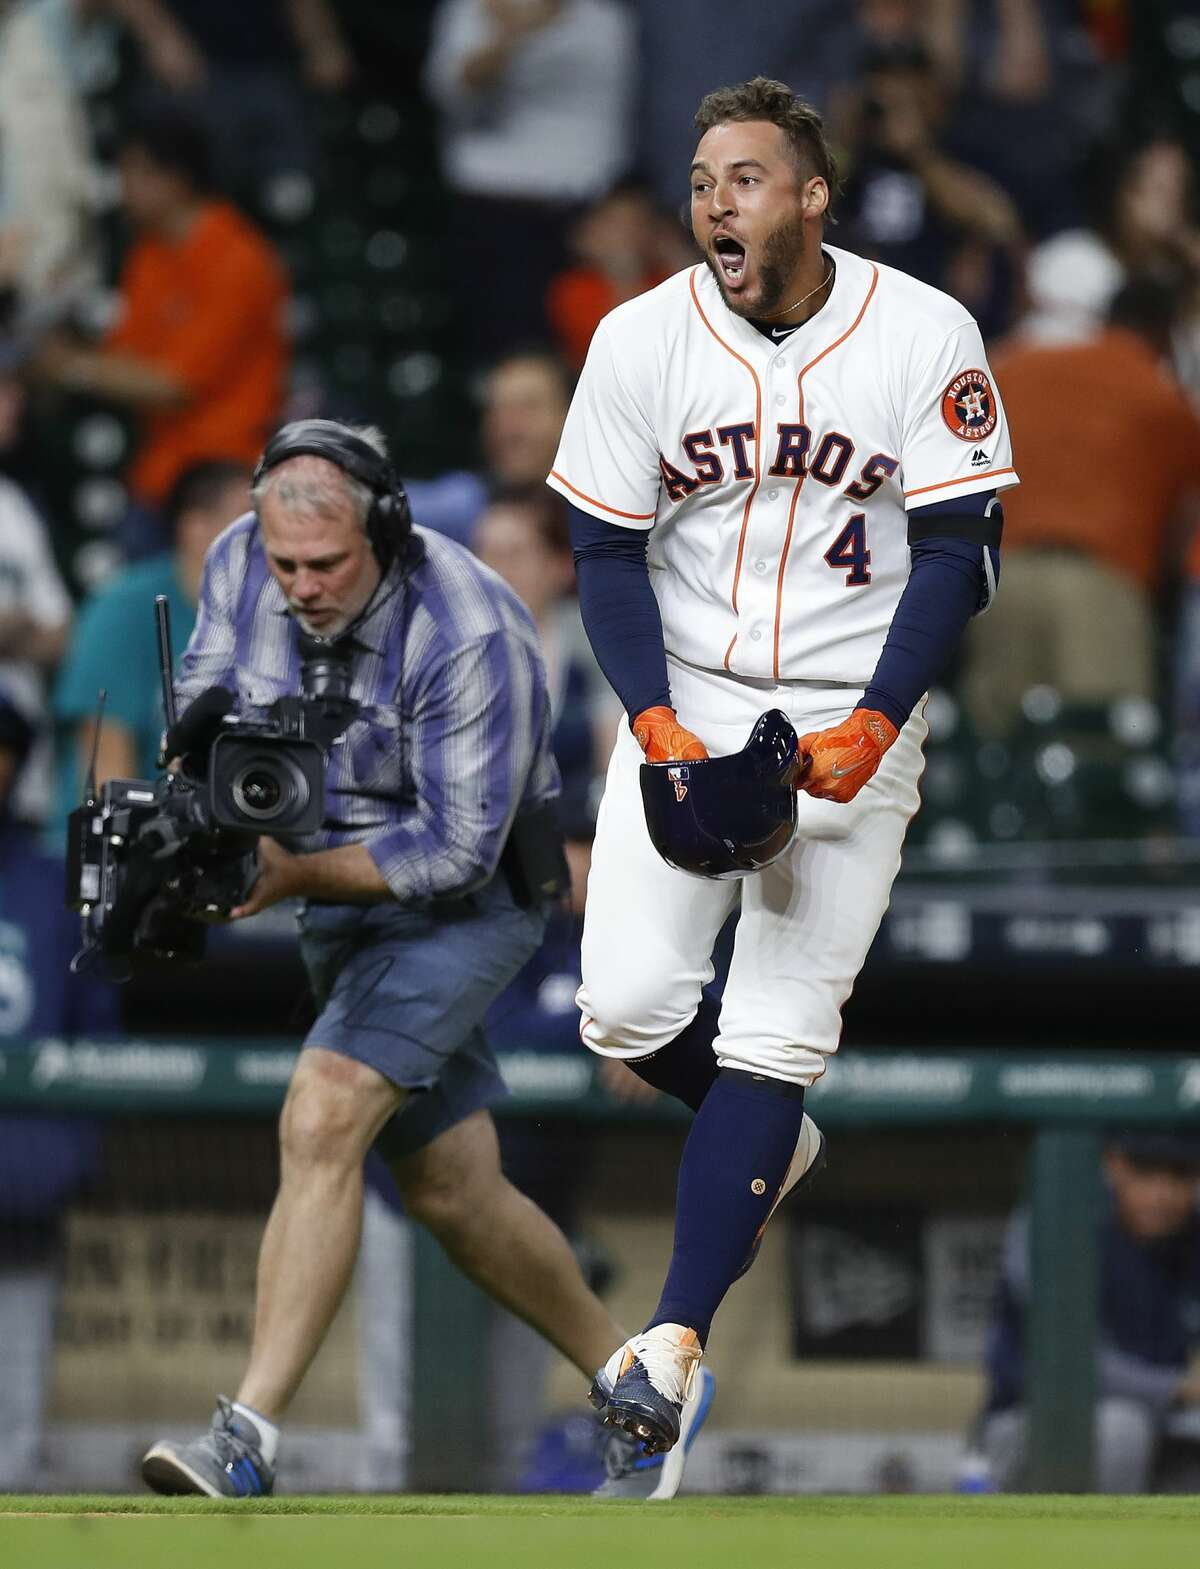 Houston Astros right fielder George Springer (4) celebrates his game winning home run in the thirteenth inning of an MLB baseball game at Minute Maid Park, Wednesday, April 5, 2017, in Houston. ( Karen Warren / Houston Chronicle )